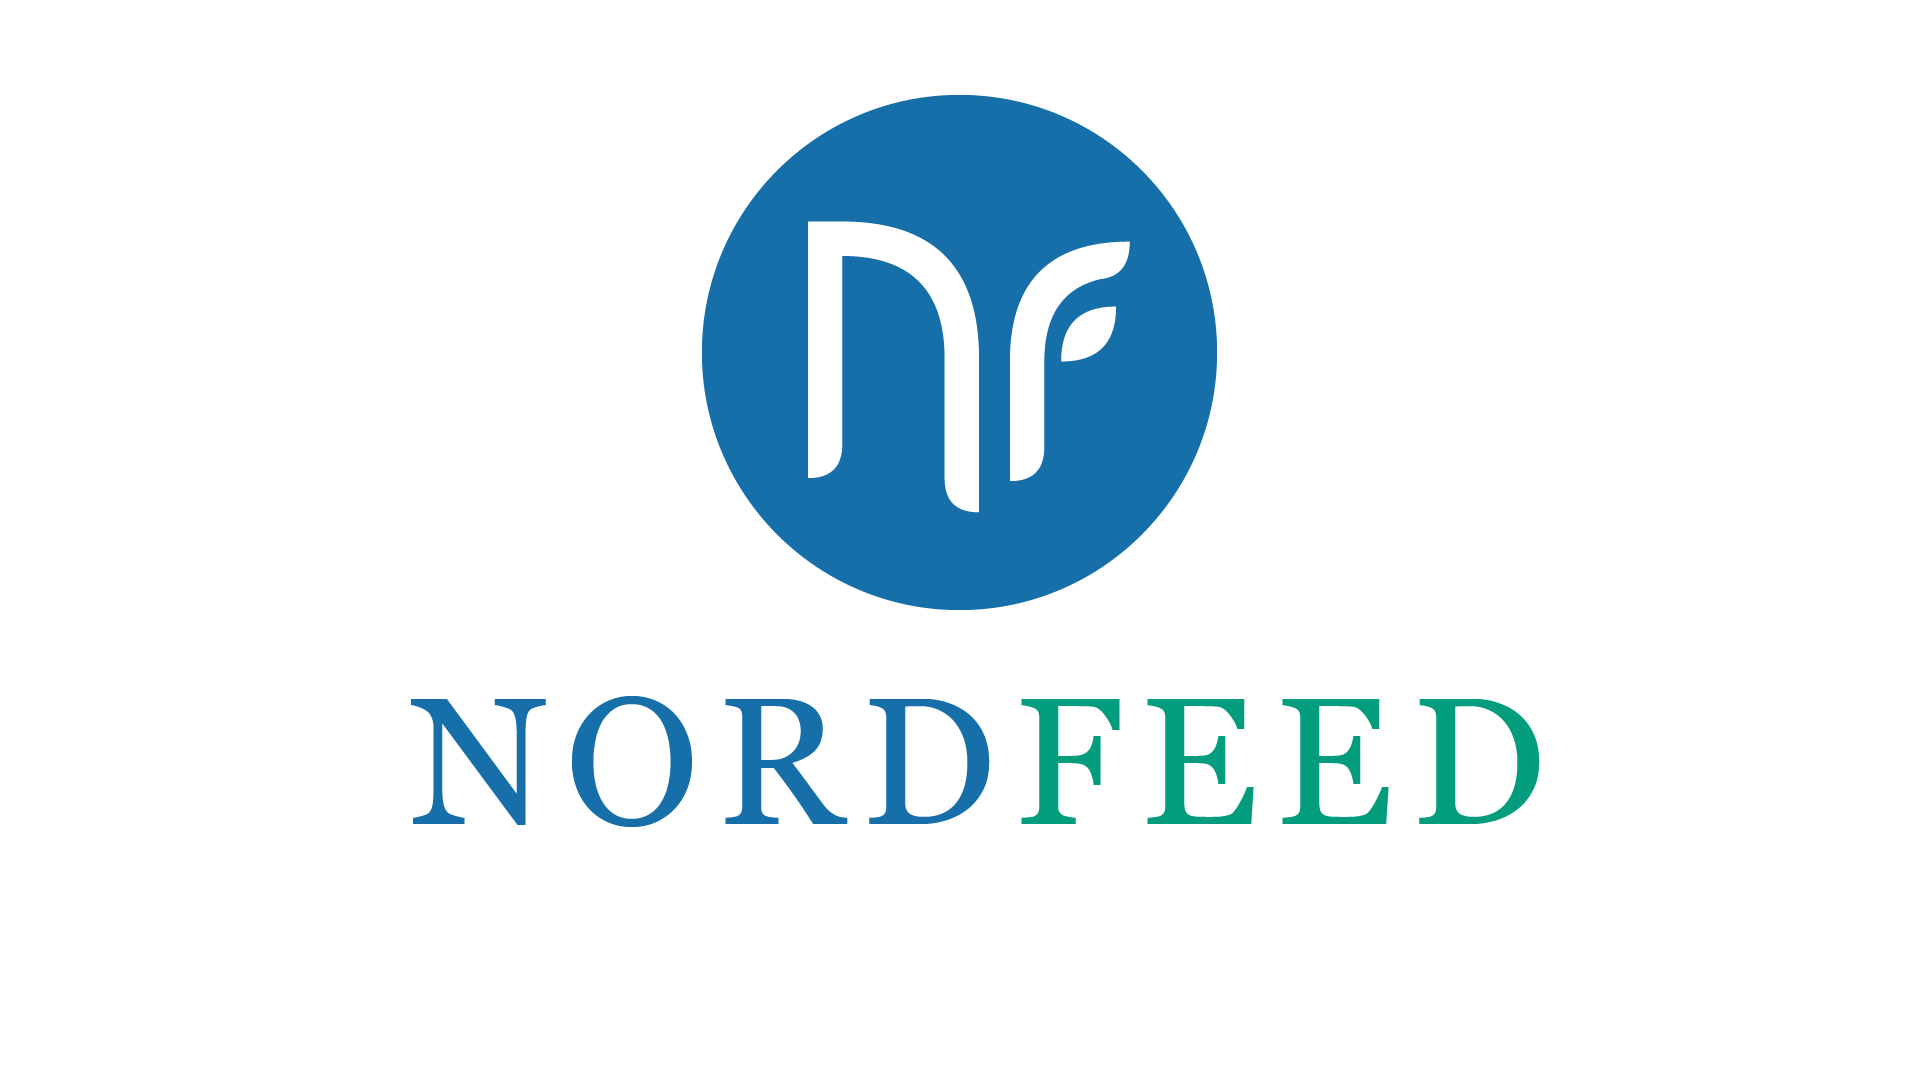 Nordexim - Nordfeed